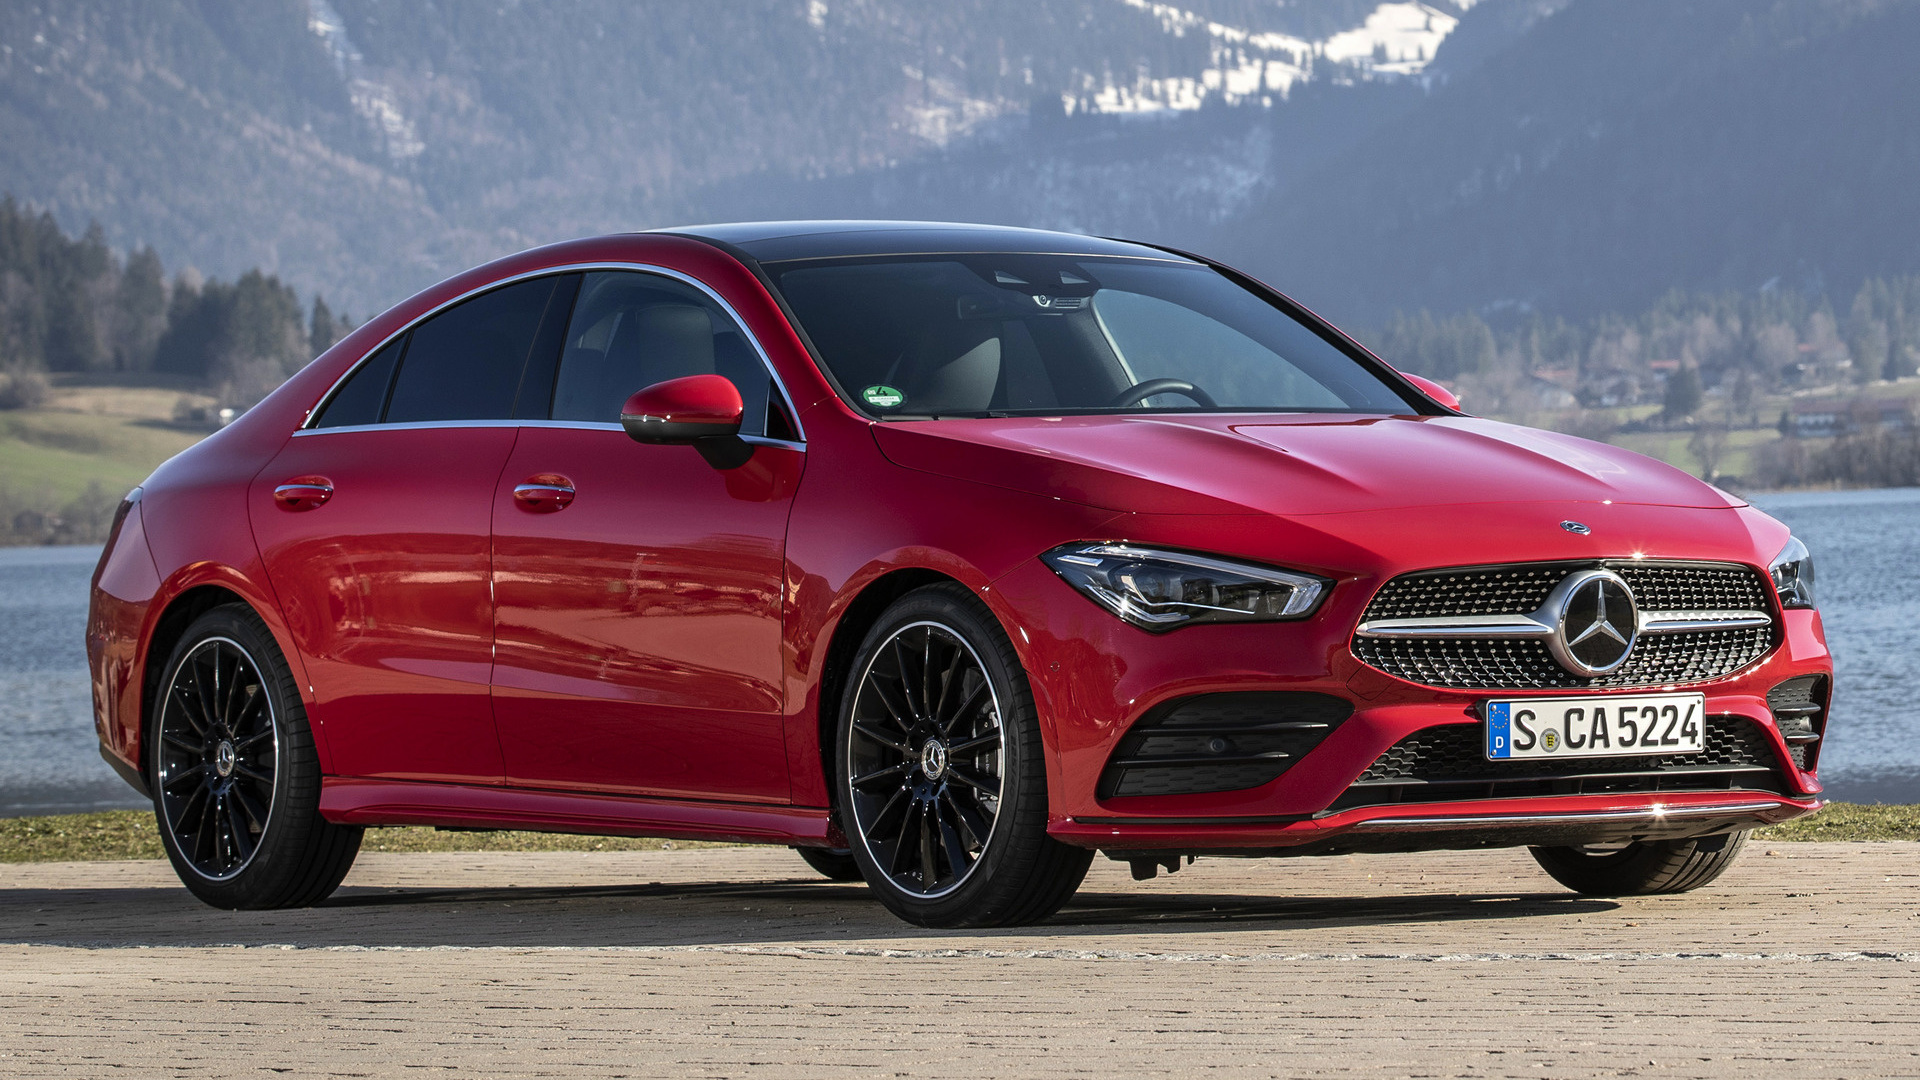 Mercedes Benz Cla >> 2019 Mercedes-Benz CLA-Class AMG Line - Wallpapers and HD Images | Car Pixel